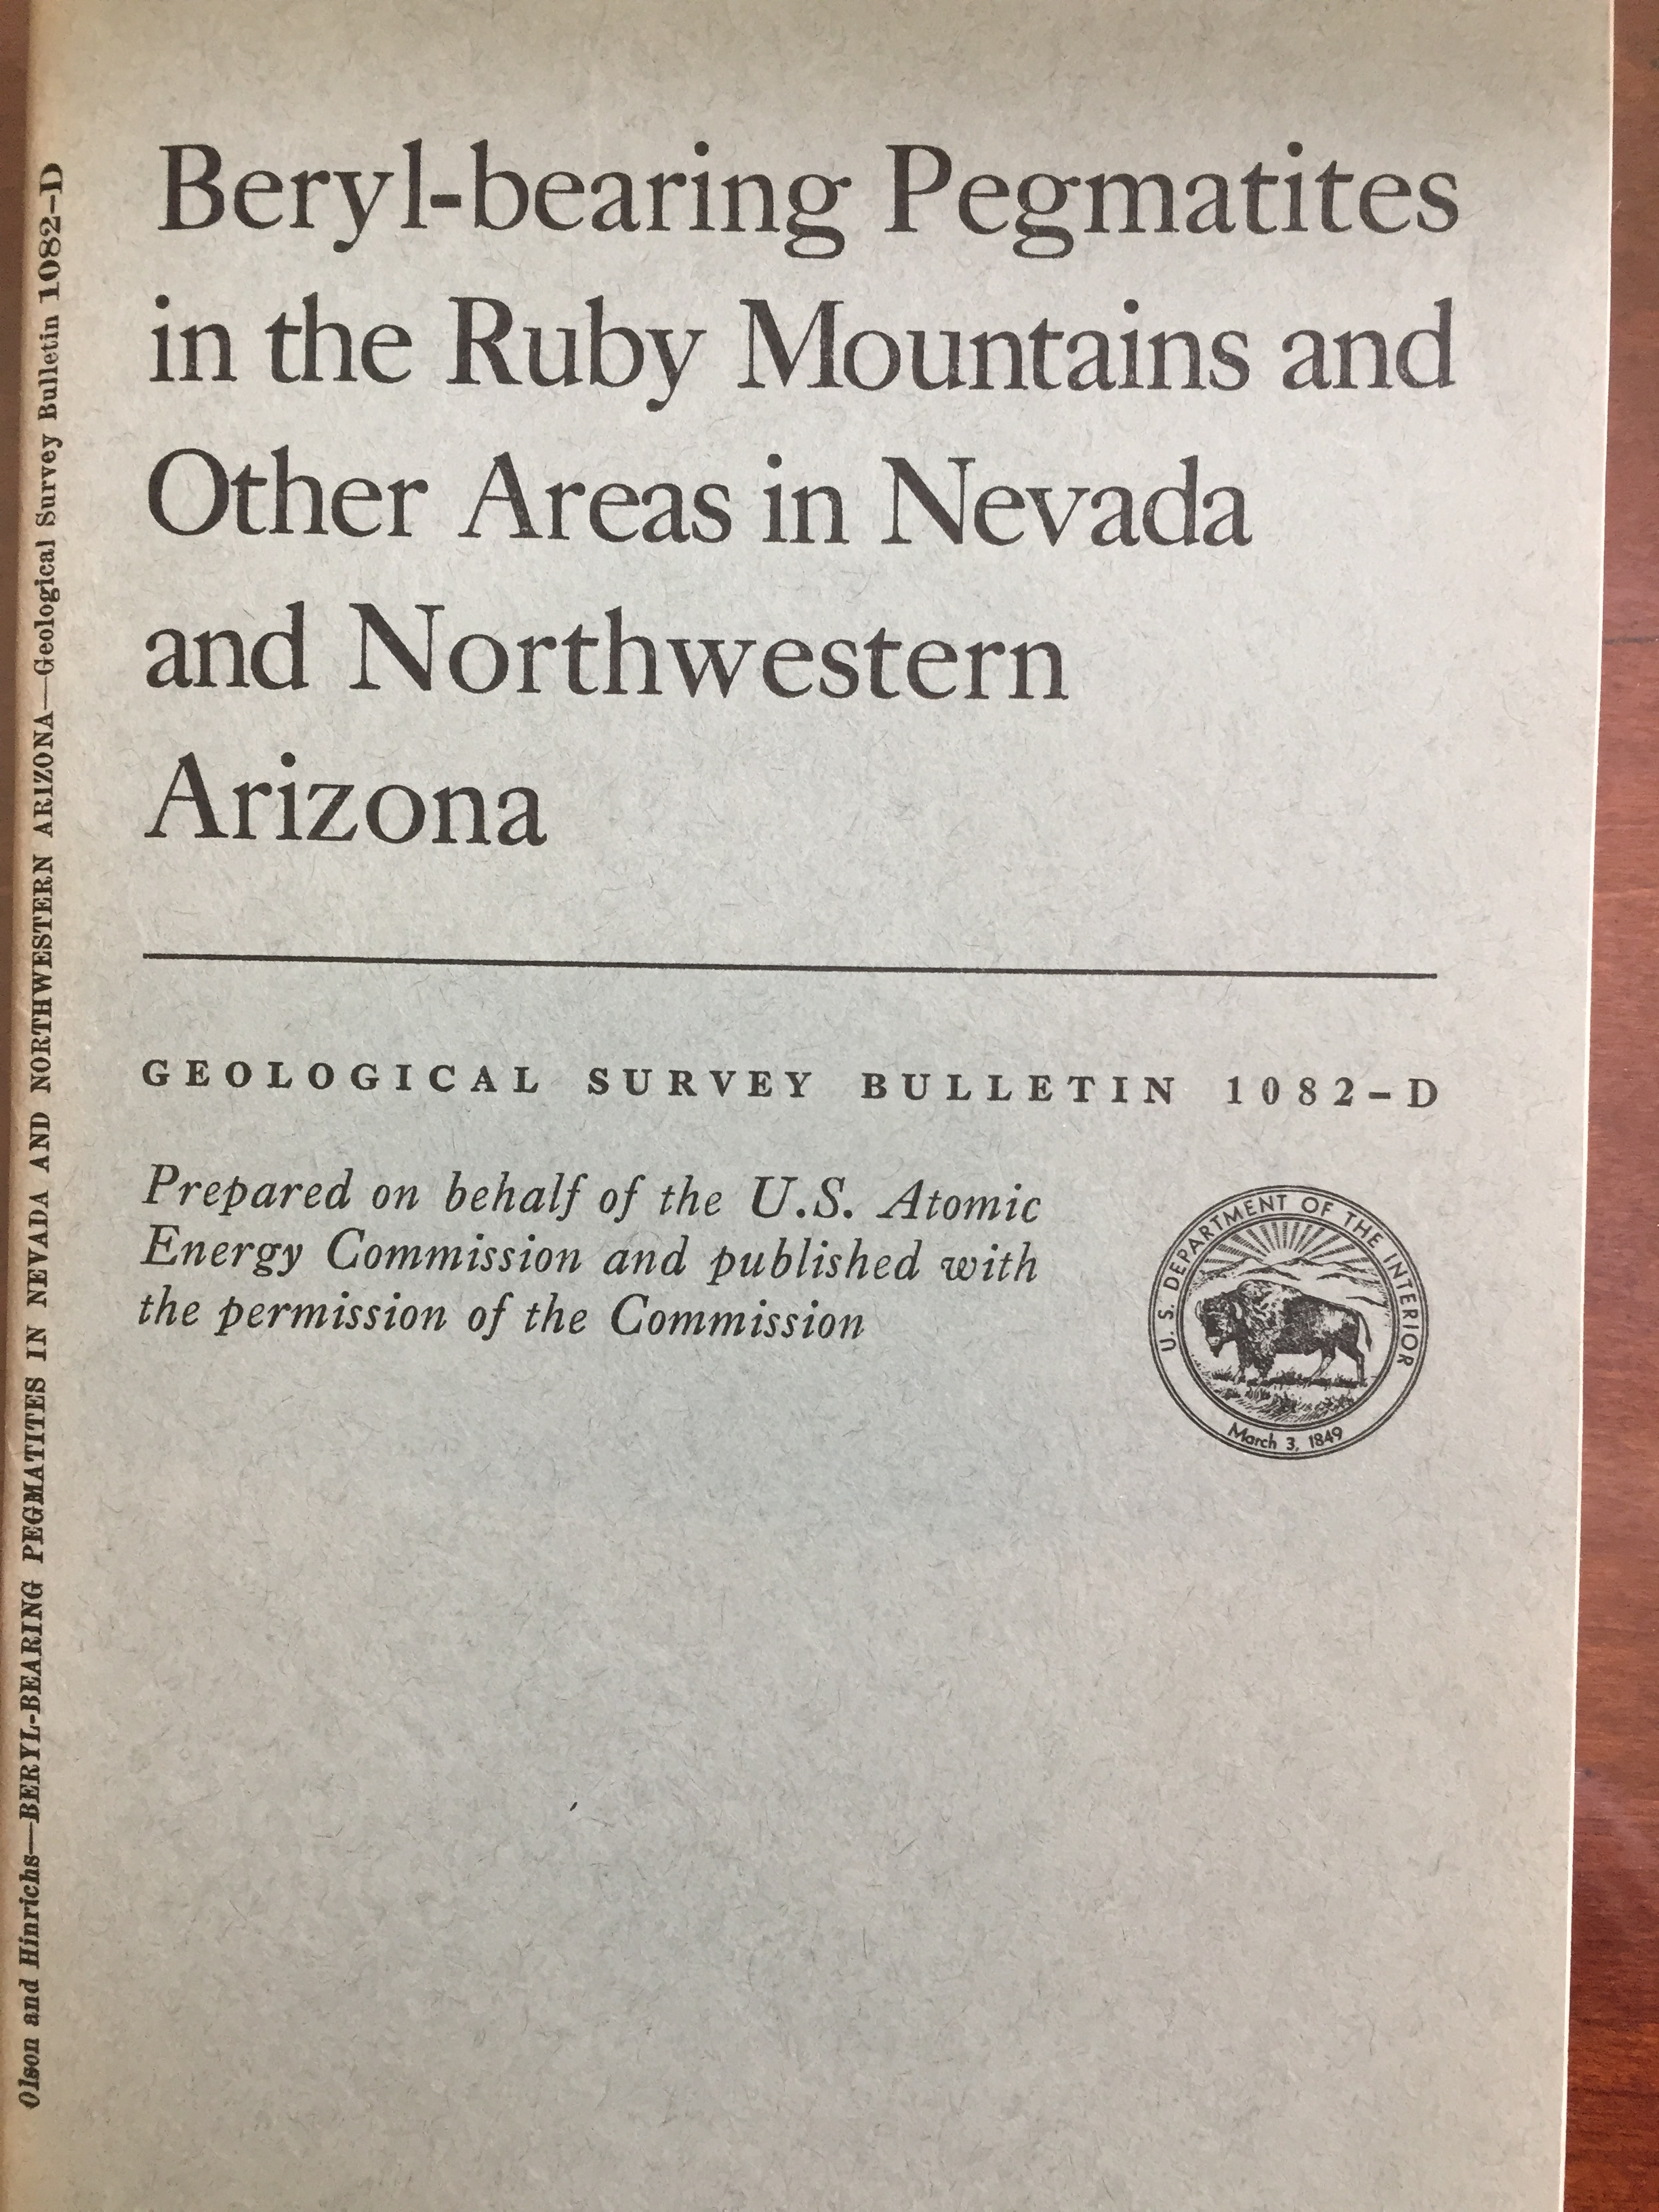 Image for Beryl-bearing Pegmatites in the Ruby Mountains and Other Areas in Nevada and Northwestern Arizona